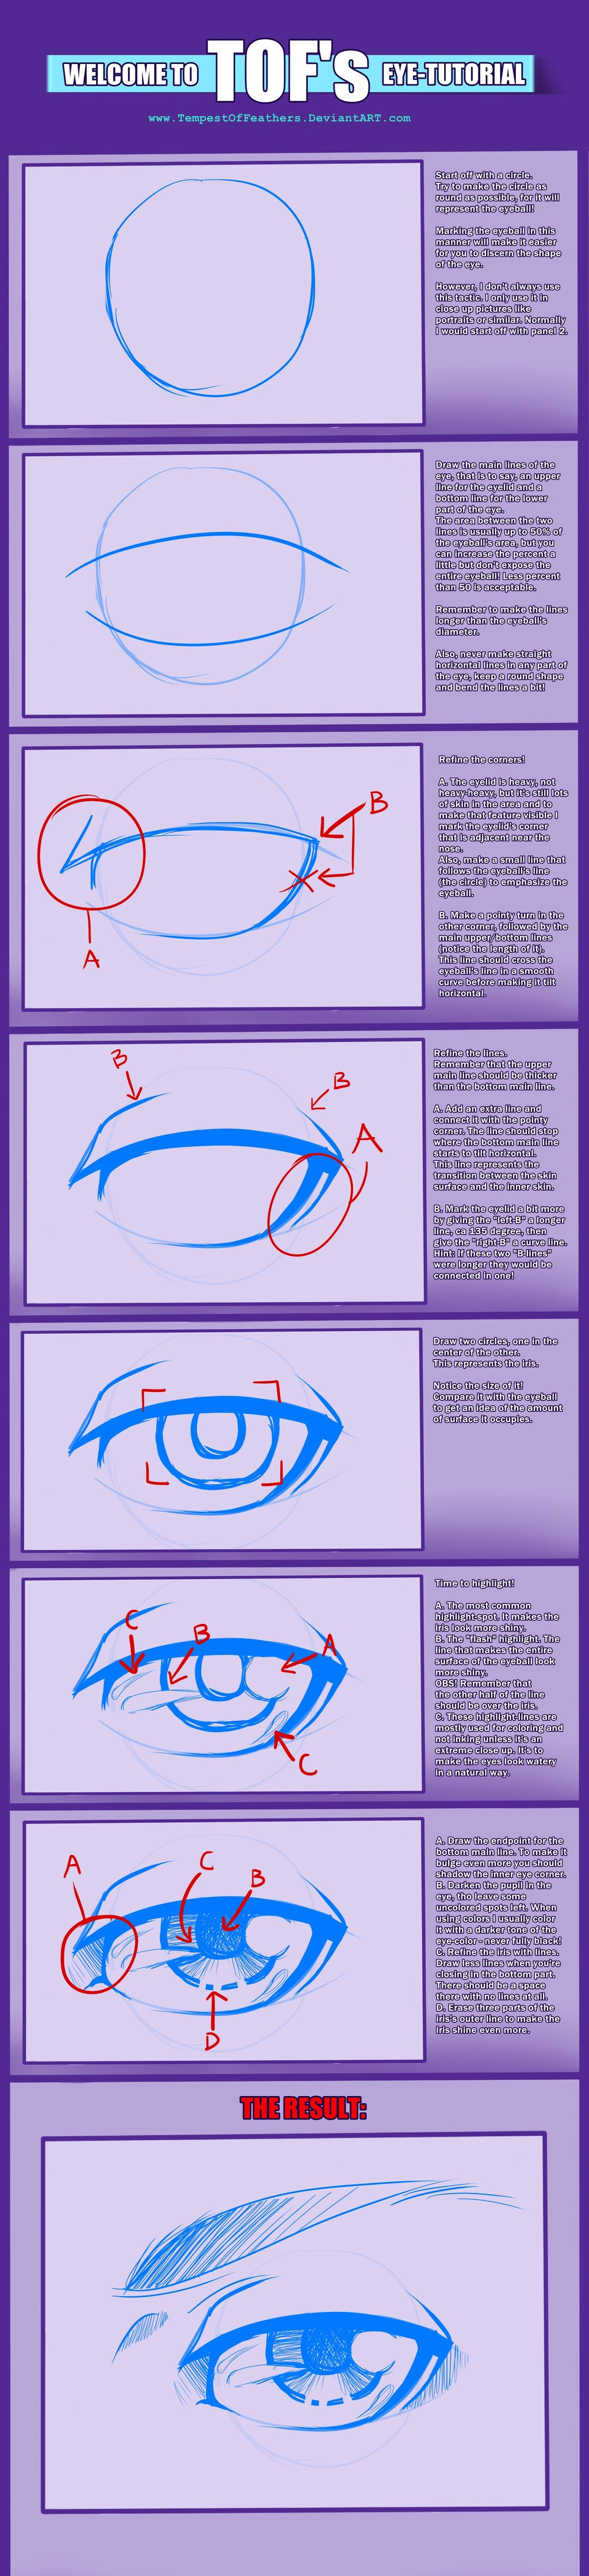 Tof S Eye Tutorial By Tempestoffeathers Deviantart Com On Deviantart Sketches Tutorial Eye Tutorial Tutorial